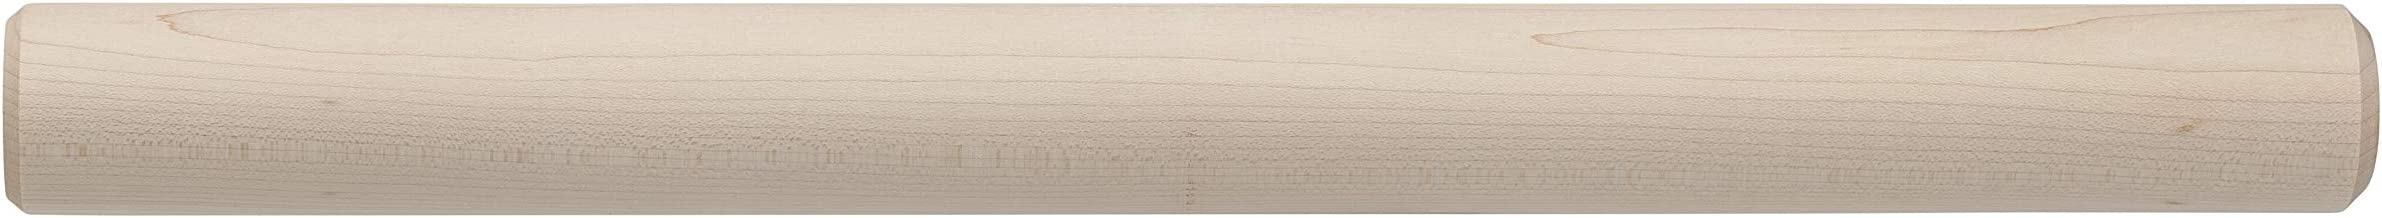 Ateco Solid Maple Wood Dowel Rolling Pin, 19-Inches